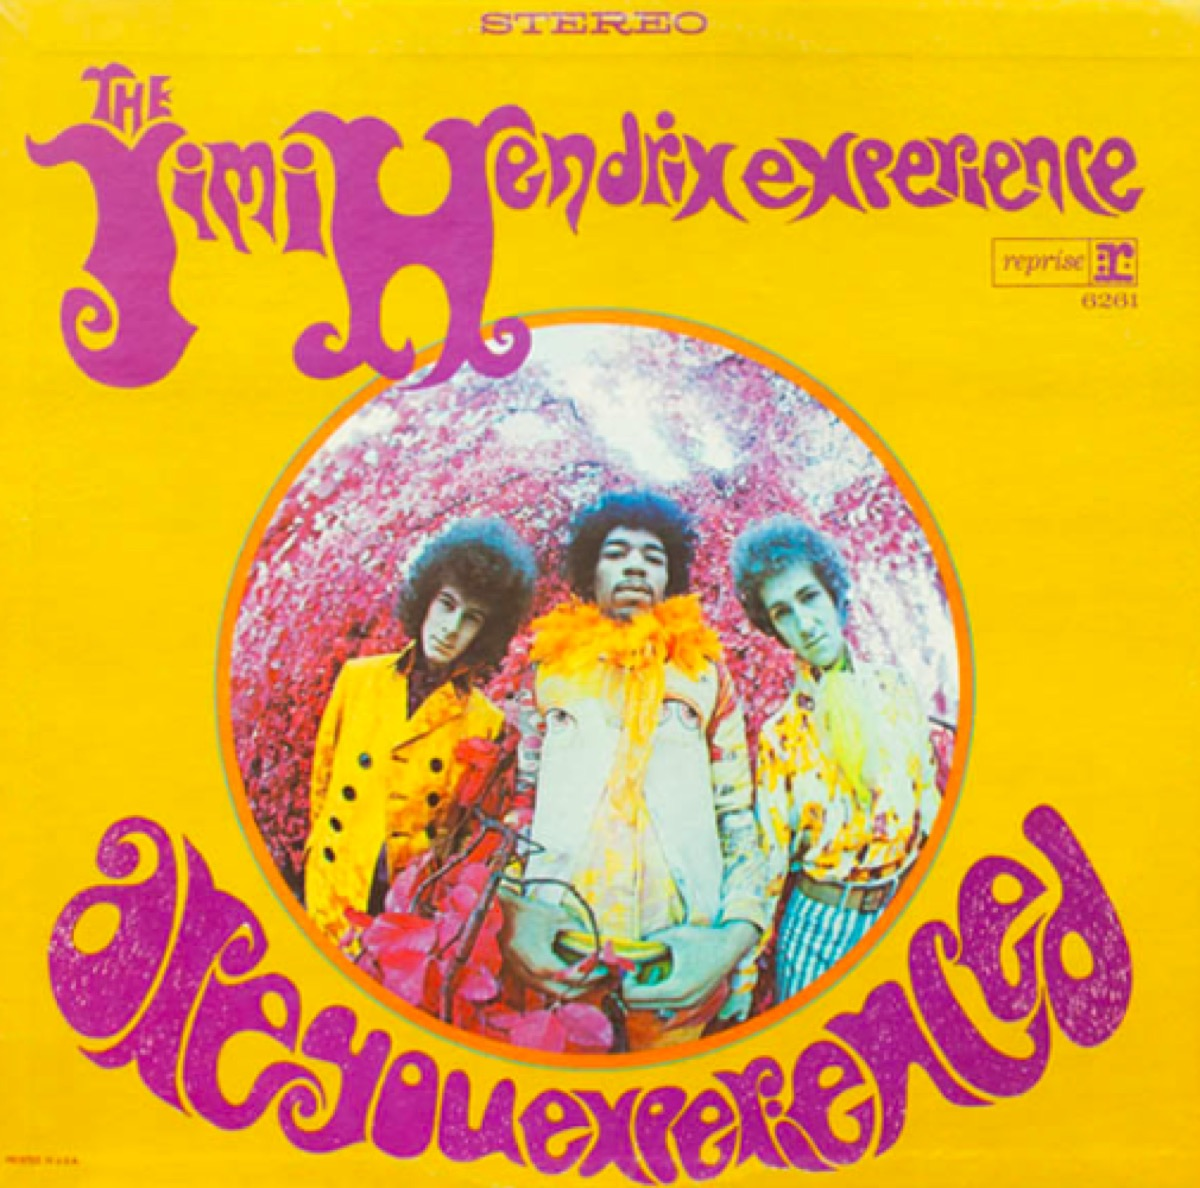 Are You Experienced album